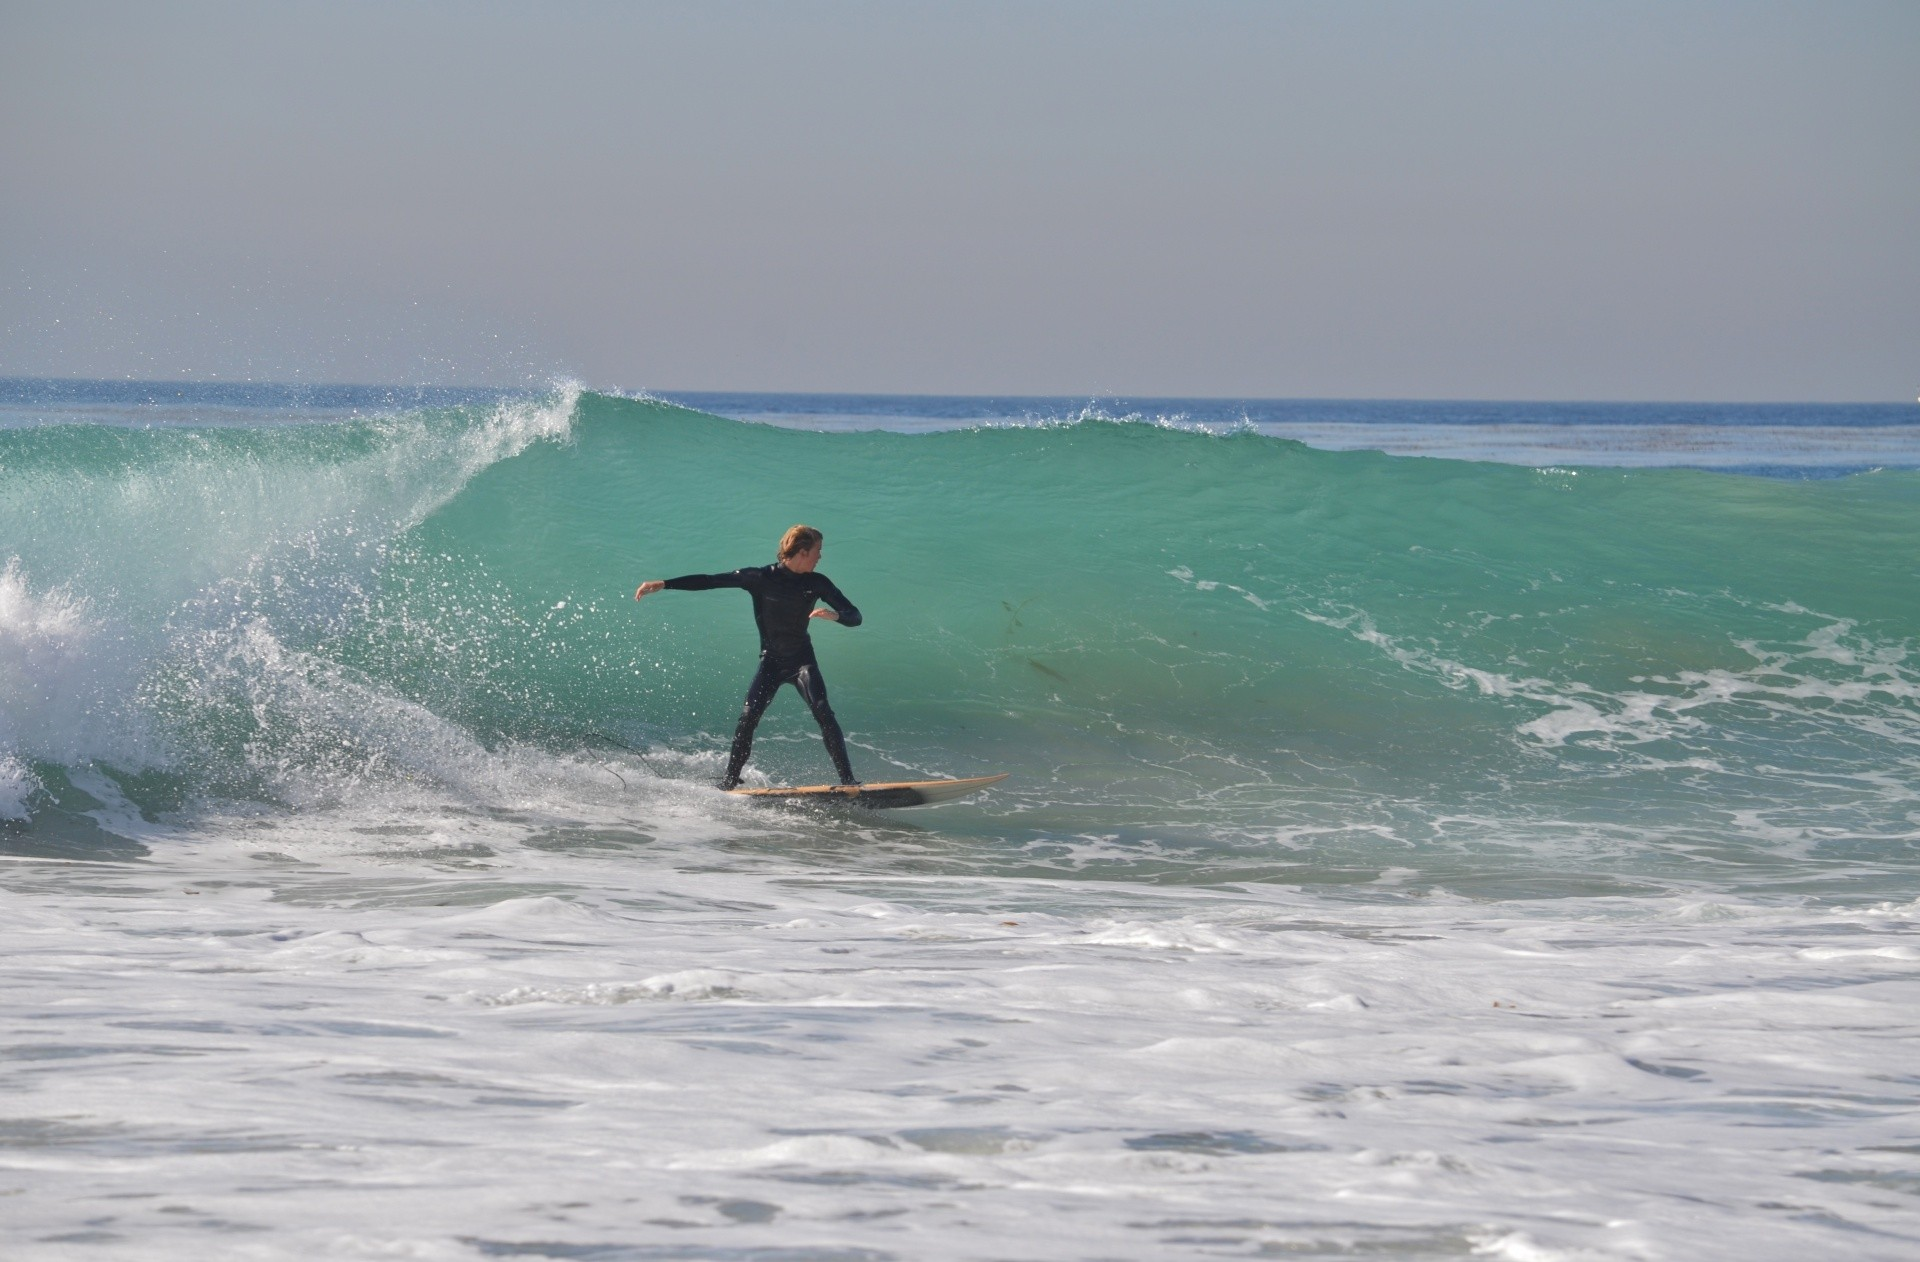 Surfer's photo of Salt Creek